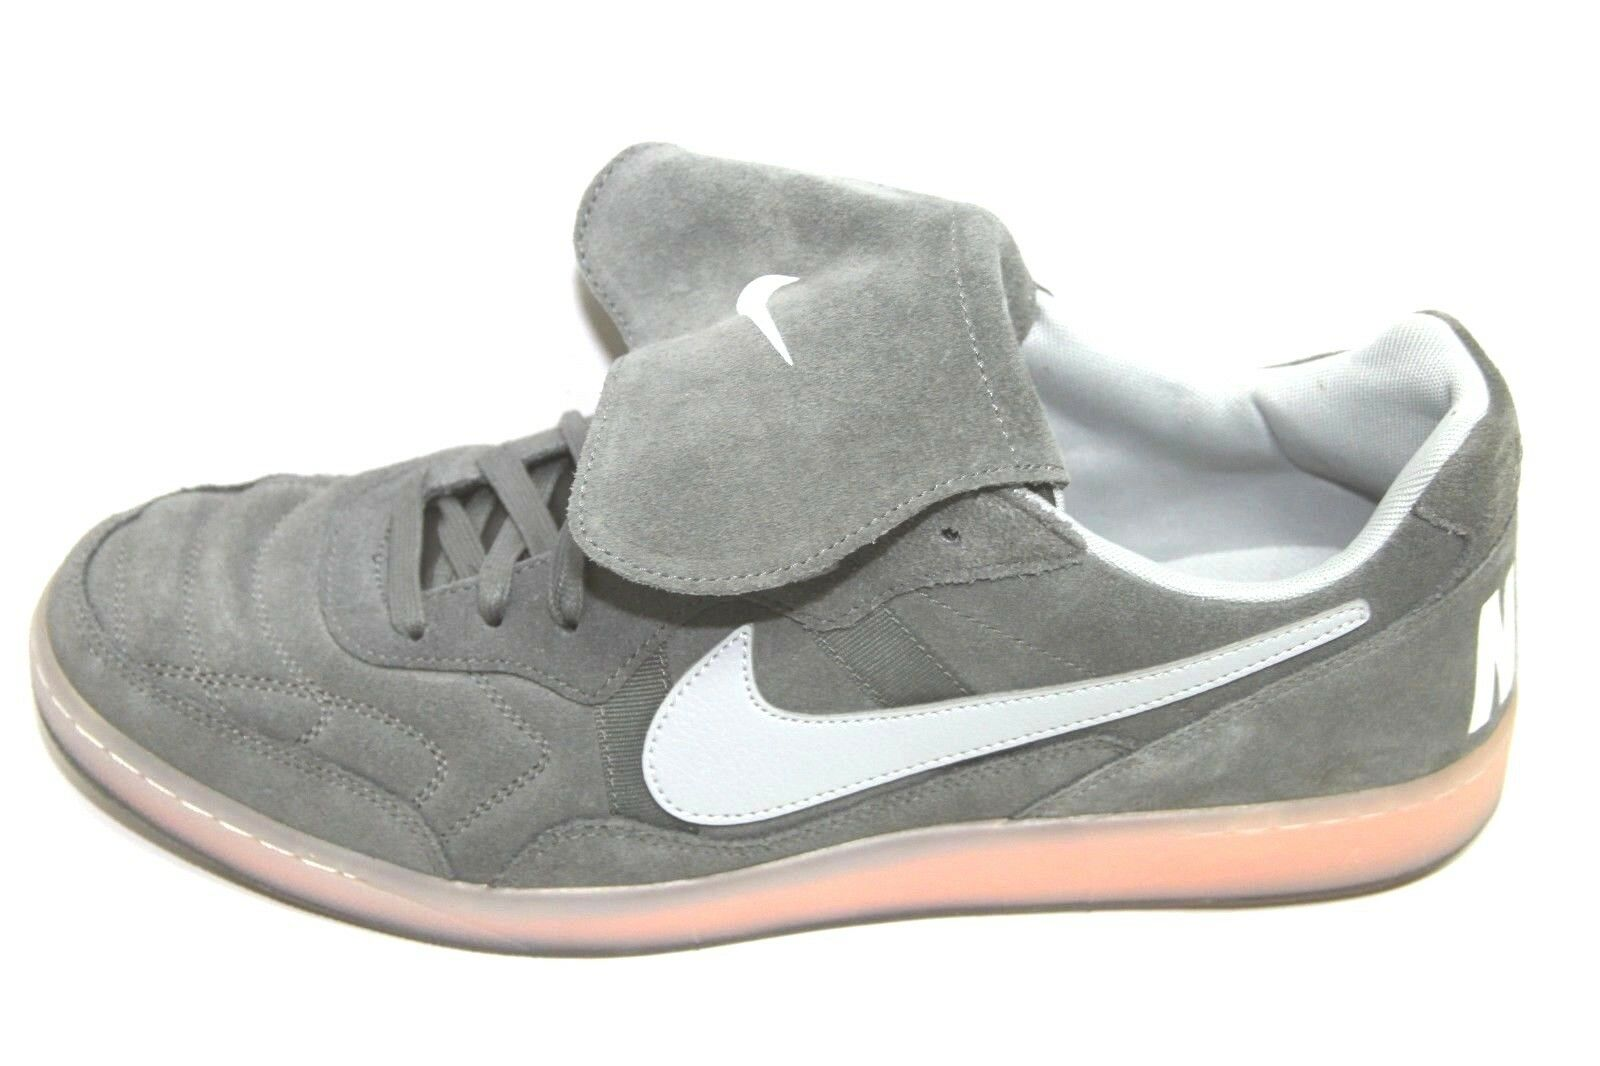 Mens Nike 631689-018 Tiempo 94 Grey orange Athletic shoes Sz 14 NWOB  110